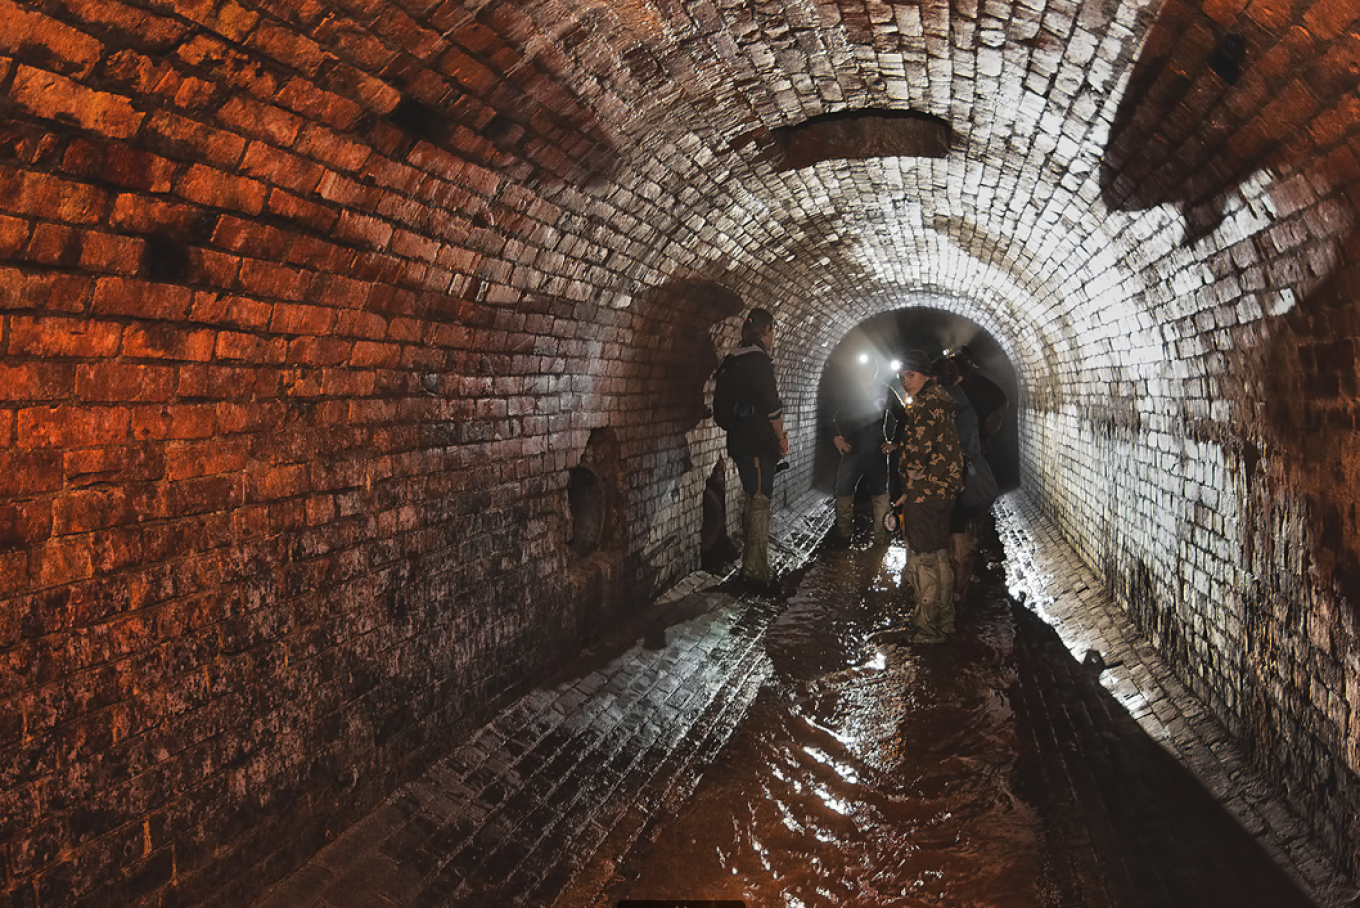 The oldest sections of the Neglinnaya tunnels date back to the early 1800s.				 				EXTREMALNAYA MOSKVA